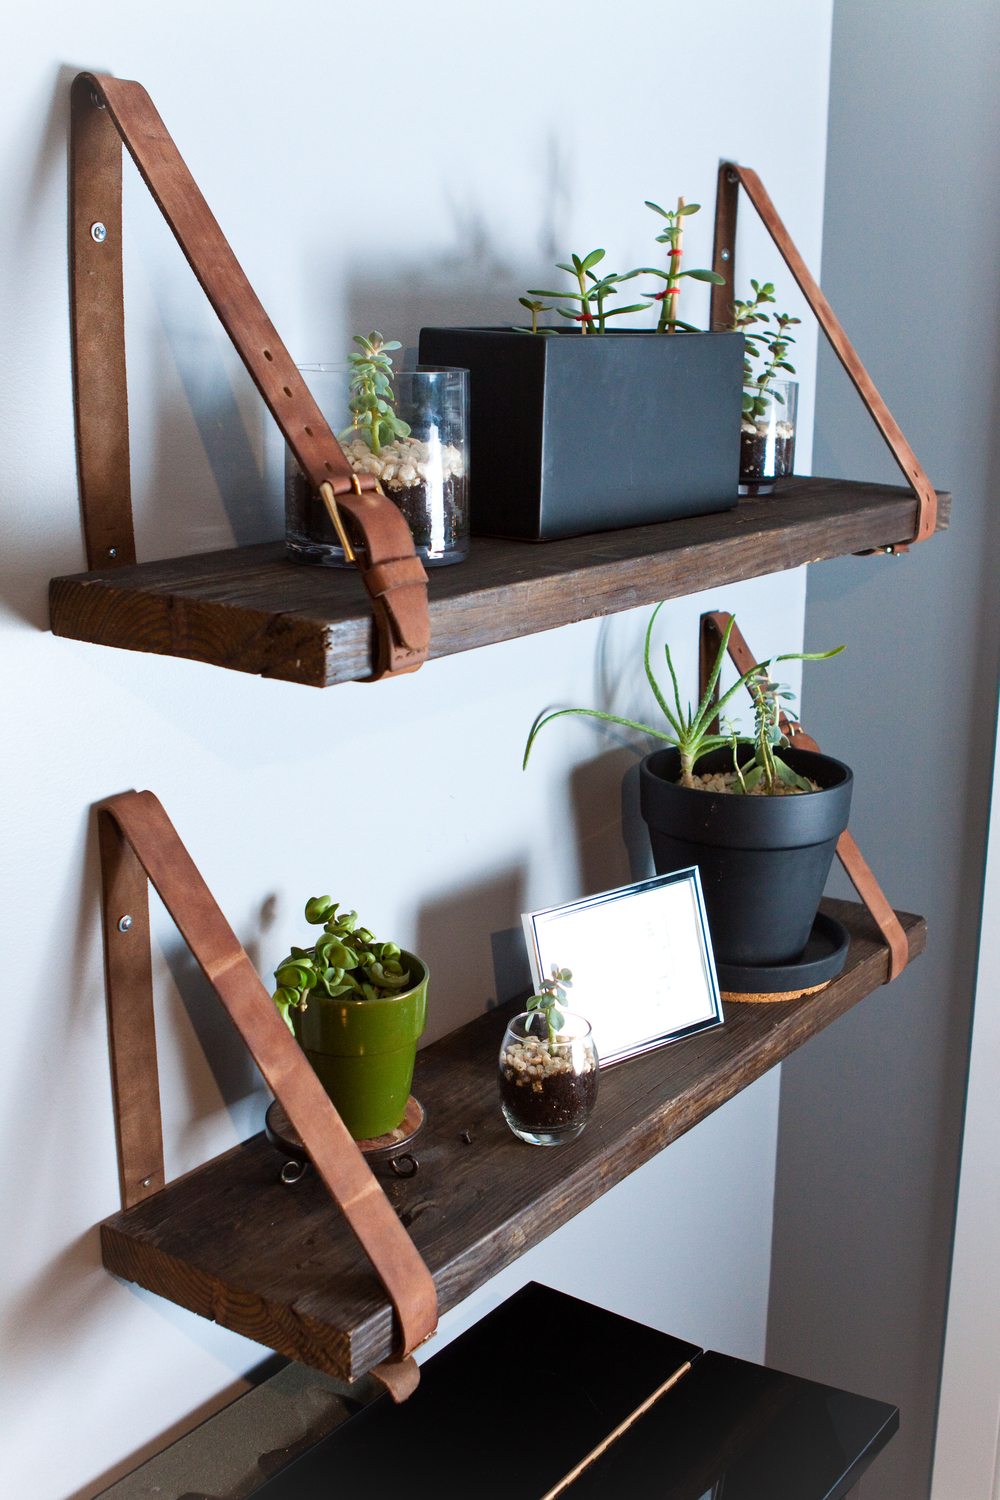 Distressed belts hold 2 reclaimed wood shelves in place for just the right touch in this eclectic space.